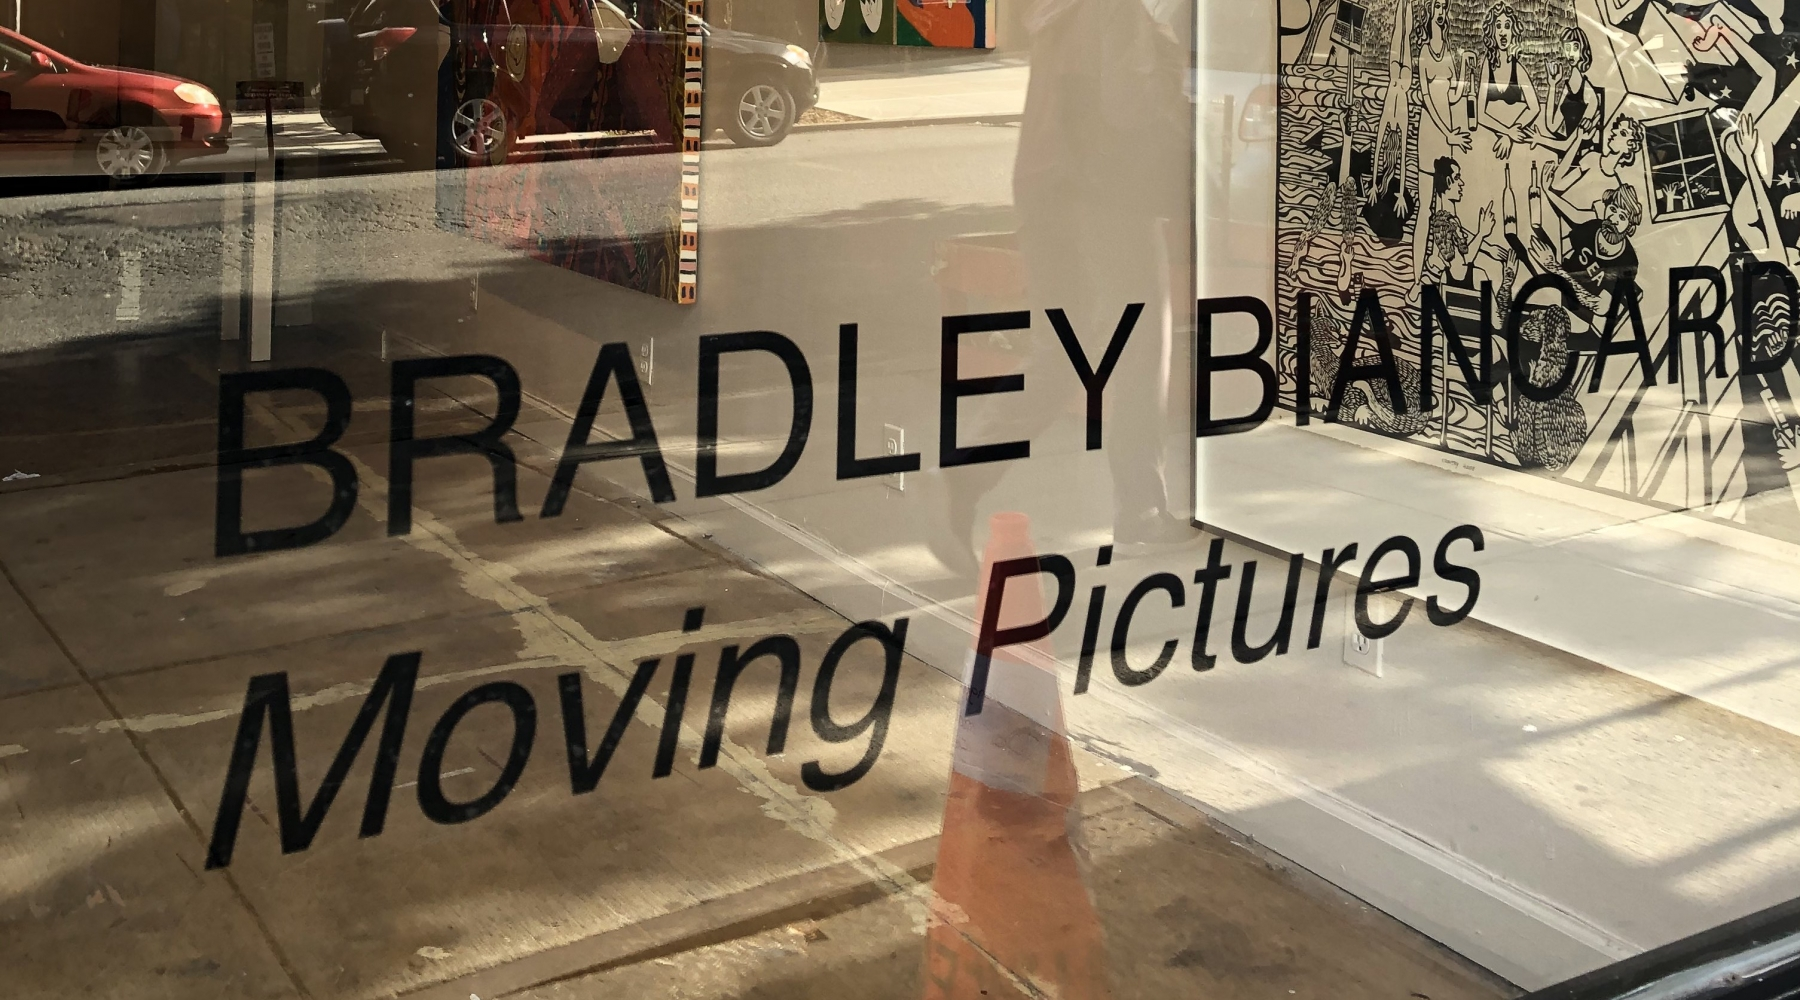 "Bradley Biancardi - ""Moving Pictures"" - through November 10"